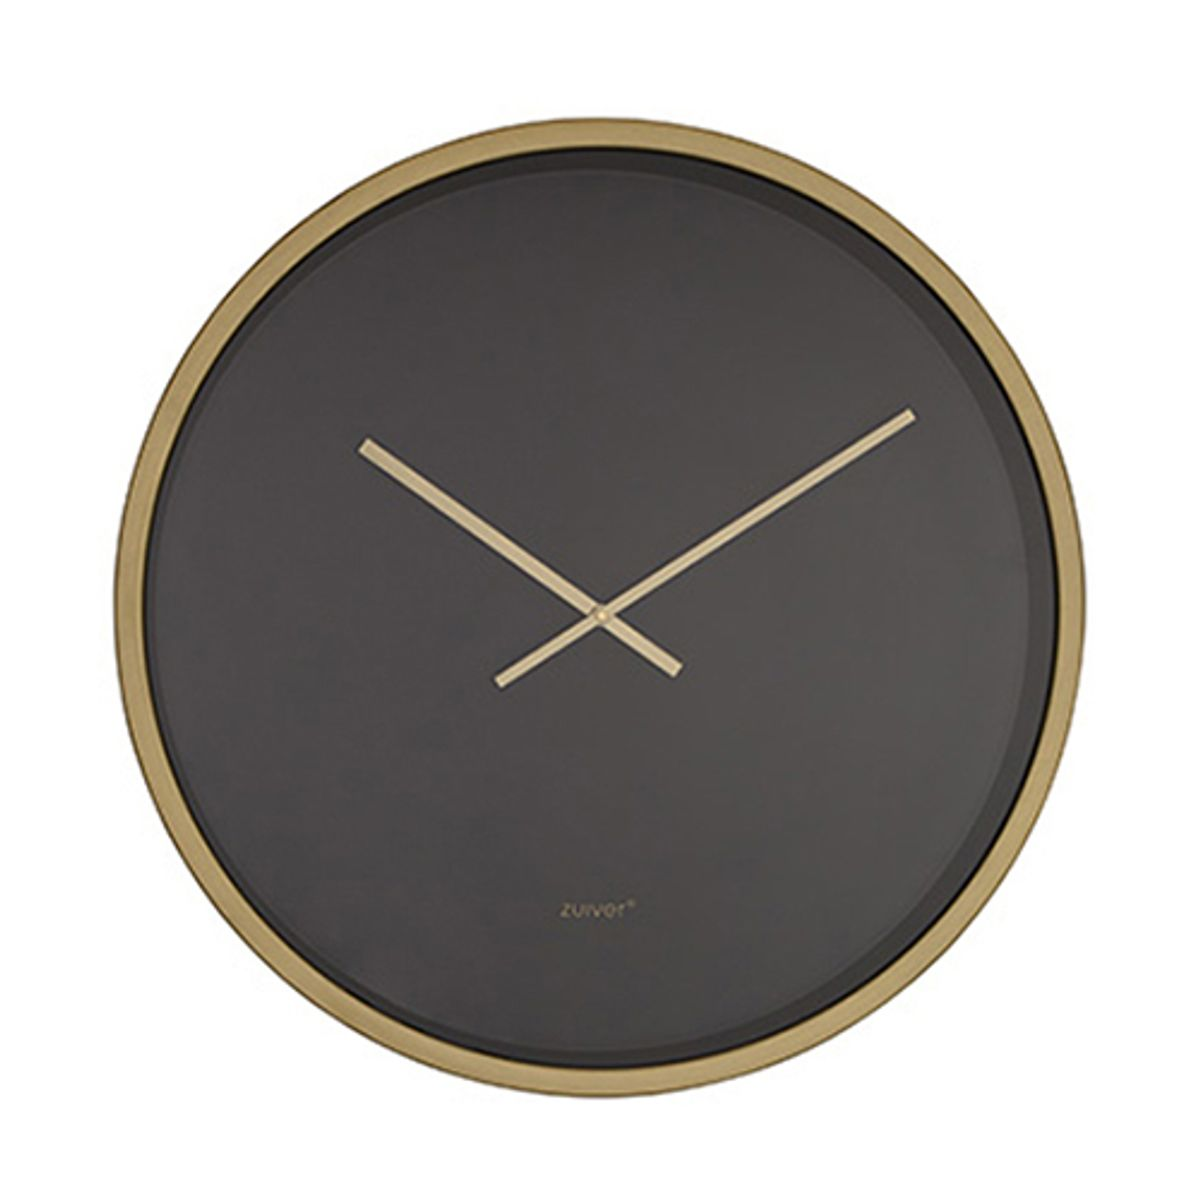 horloge en m tal noir et laiton d 60 cm bandit zuiver decoclico. Black Bedroom Furniture Sets. Home Design Ideas